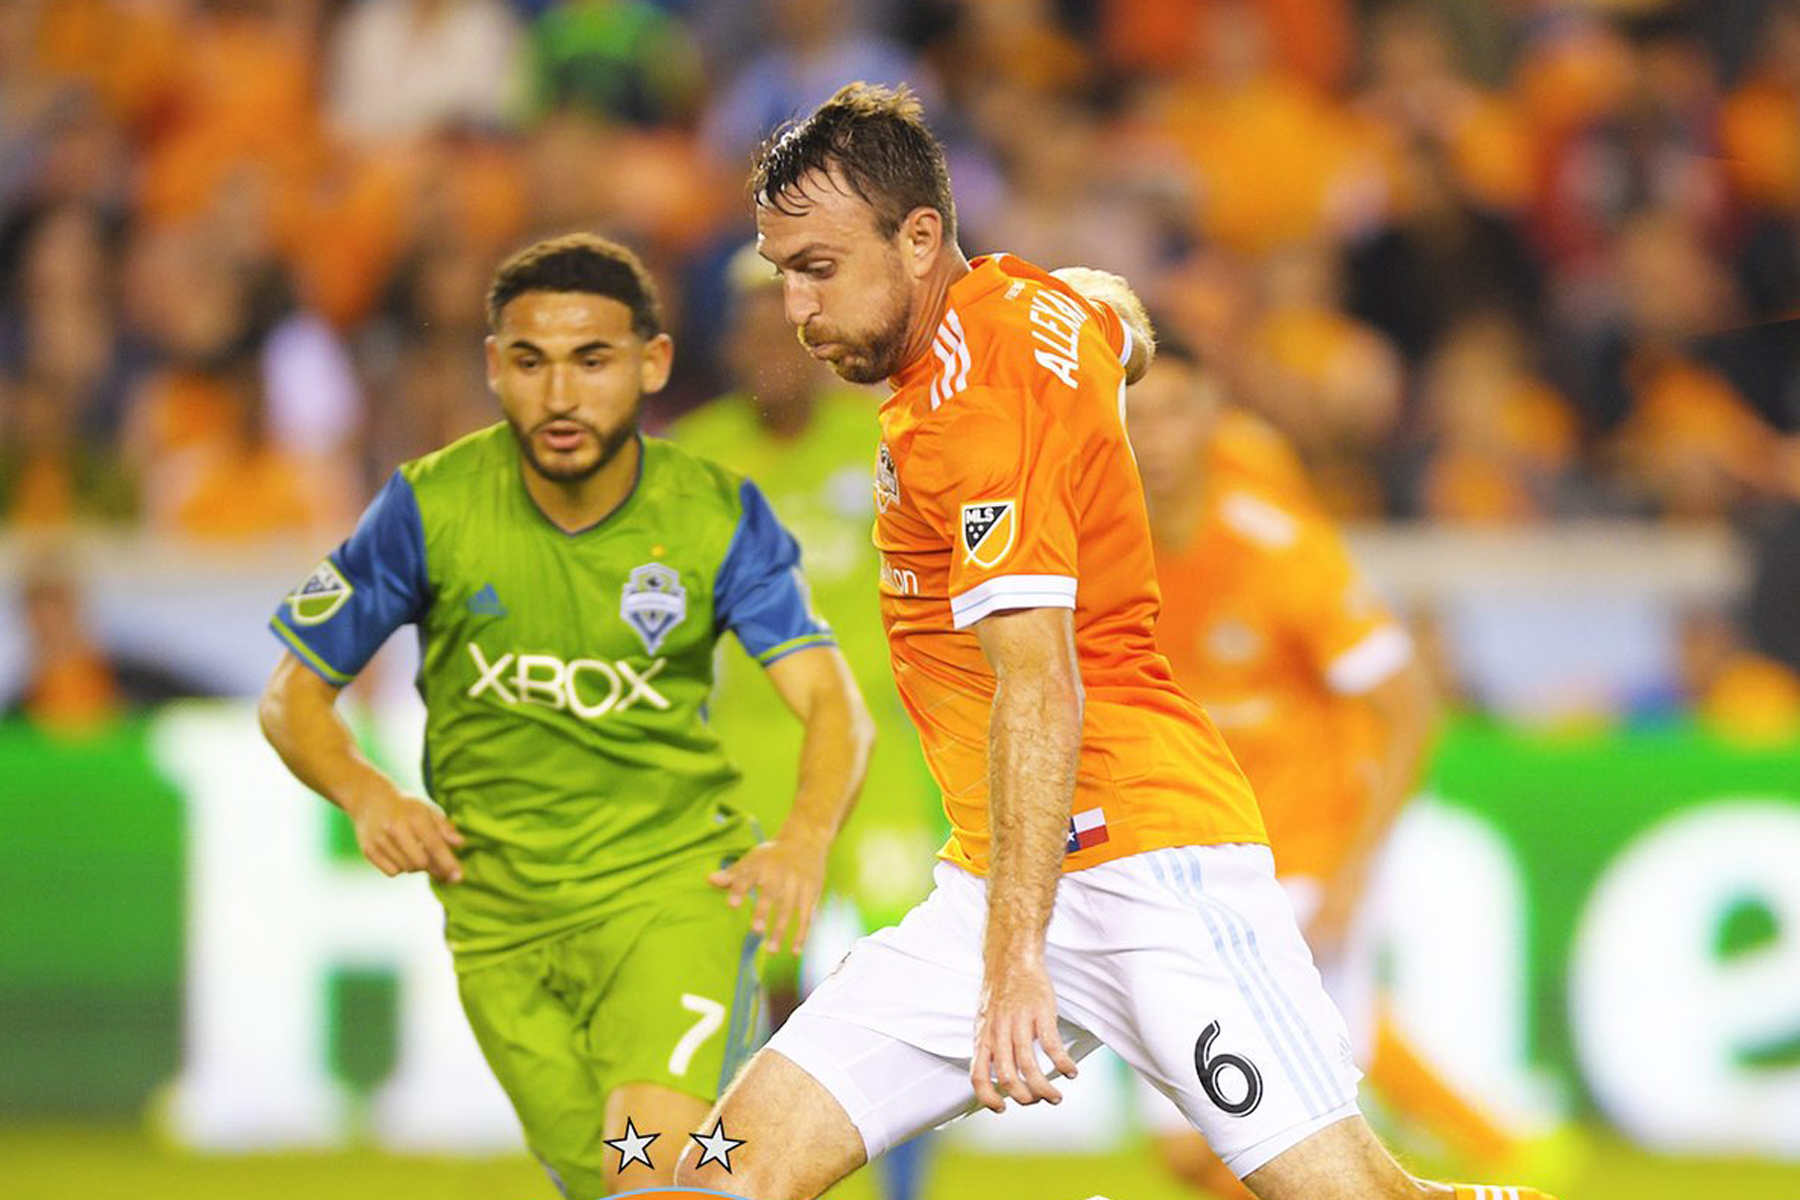 Seattle Sounders derrota 2-0 al Houston Dynamo